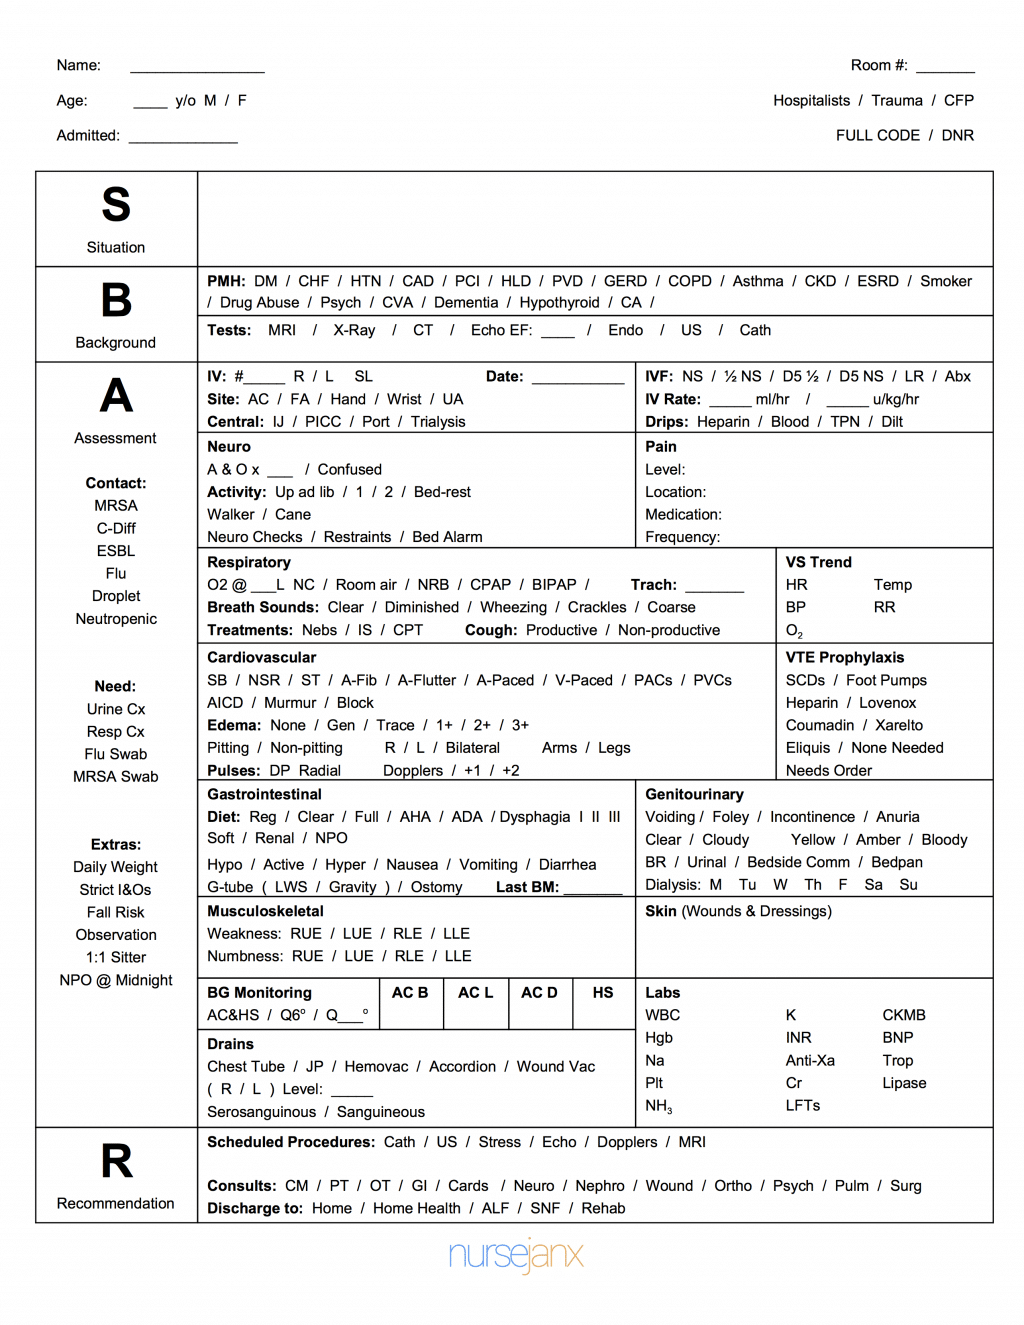 This Free Full Size Sbar Nursing Report Sheet Is Very